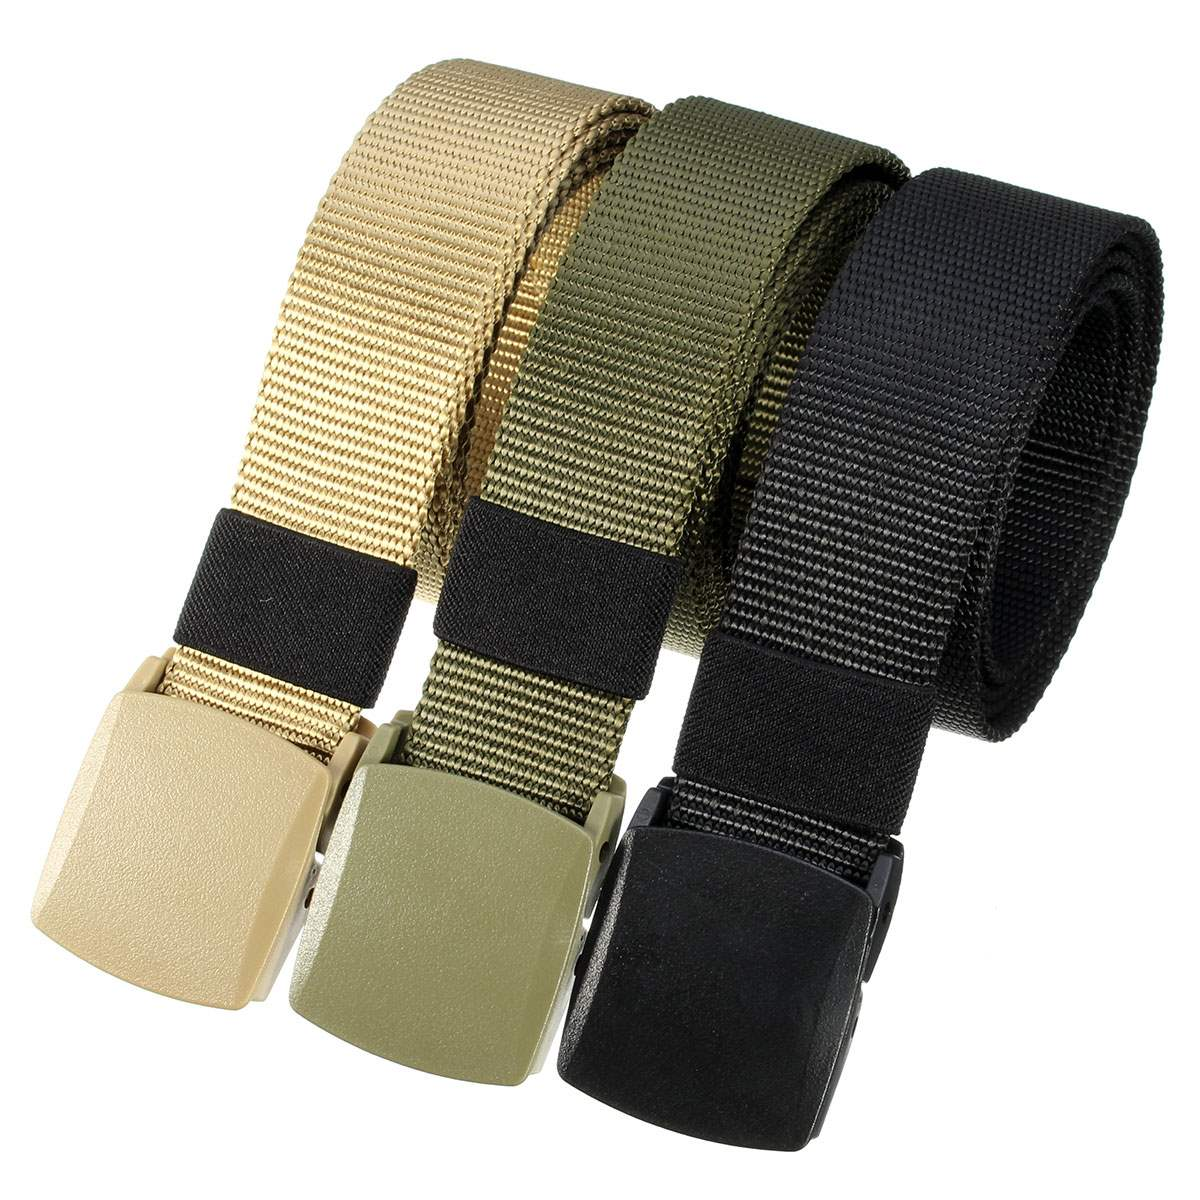 Quick-drying Automatic Buckle Polyester adjustable Belt Army Tactical Hunting Waistband Outdoor Military Rescue Survival Belt<br><br>Aliexpress